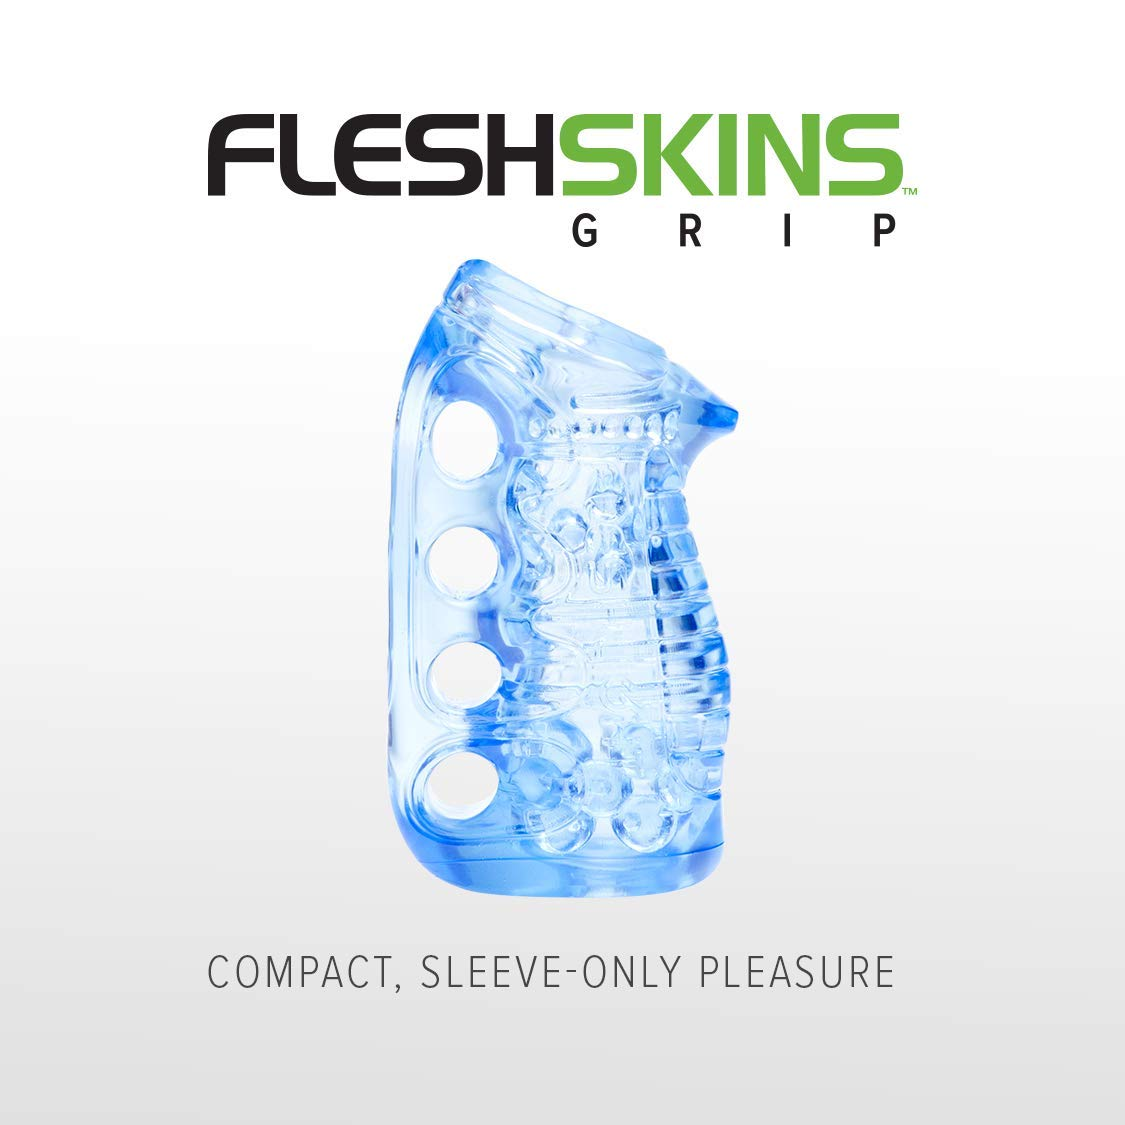 Amazon.com: Fleshlight Fleshskins Grip | Couples Handjob Helper Sex Toy |  Blue Ice Glove with Ventilated Case: Health & Personal Care